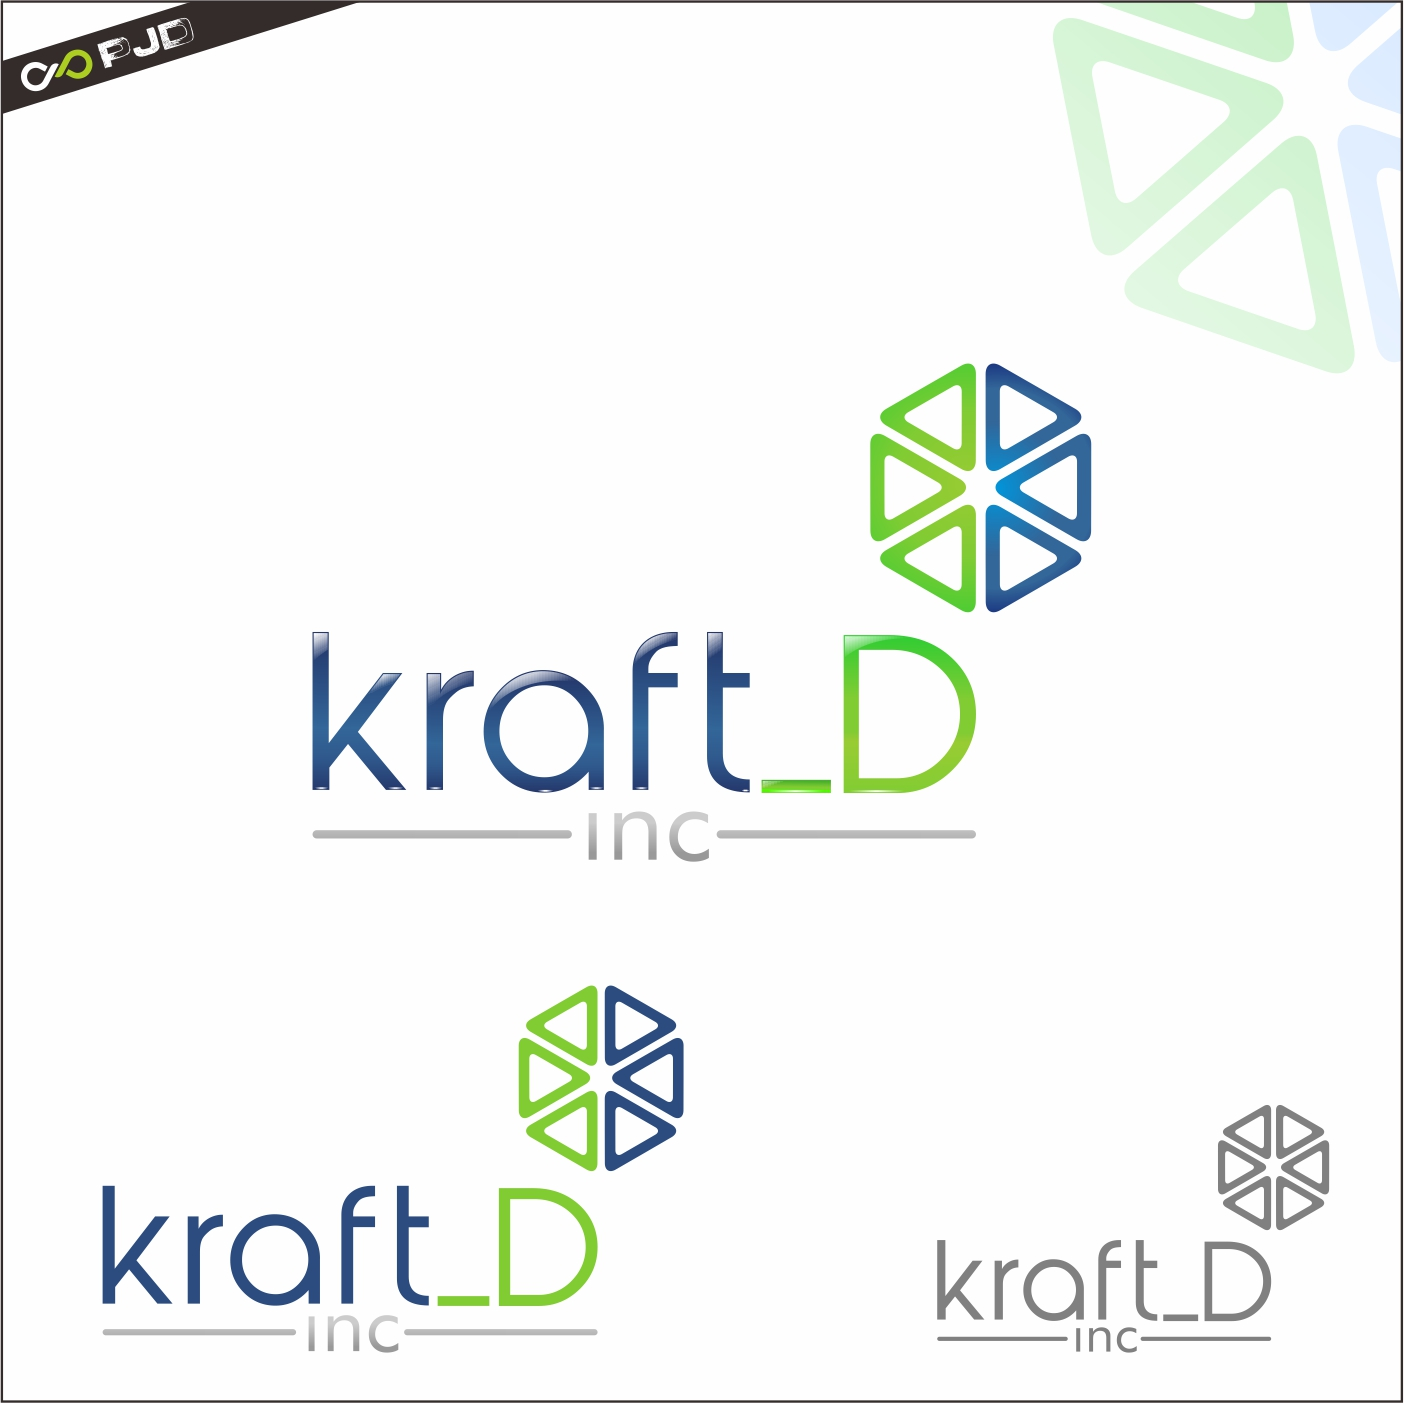 Logo Design by PJD - Entry No. 420 in the Logo Design Contest Unique Logo Design Wanted for Kraft D Inc.